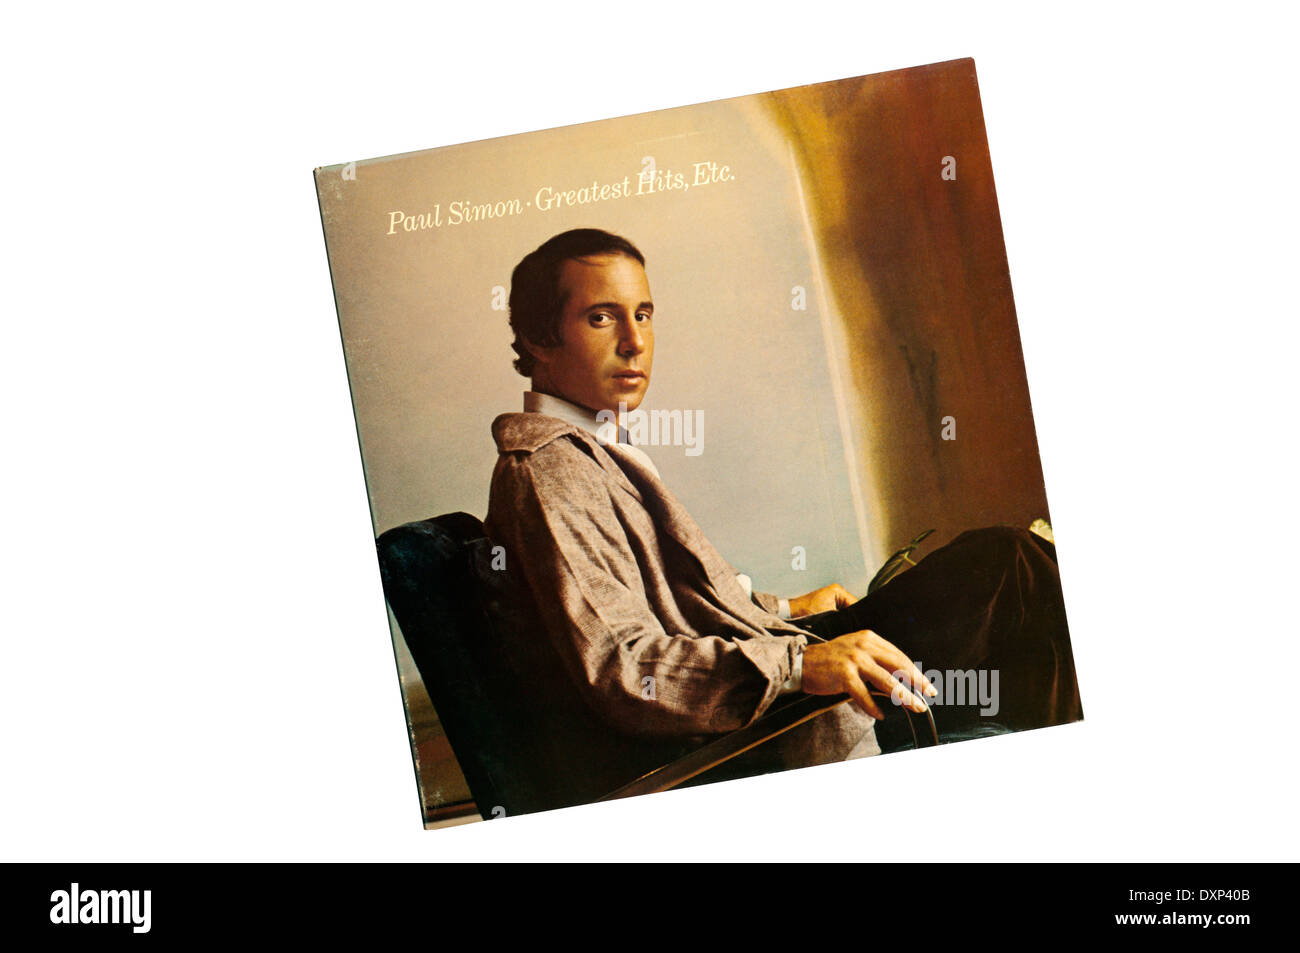 Greatest Hits, Etc. was a compilation album by American singer-songwriter Paul Simon, released in 1977 by Columbia Records - Stock Image